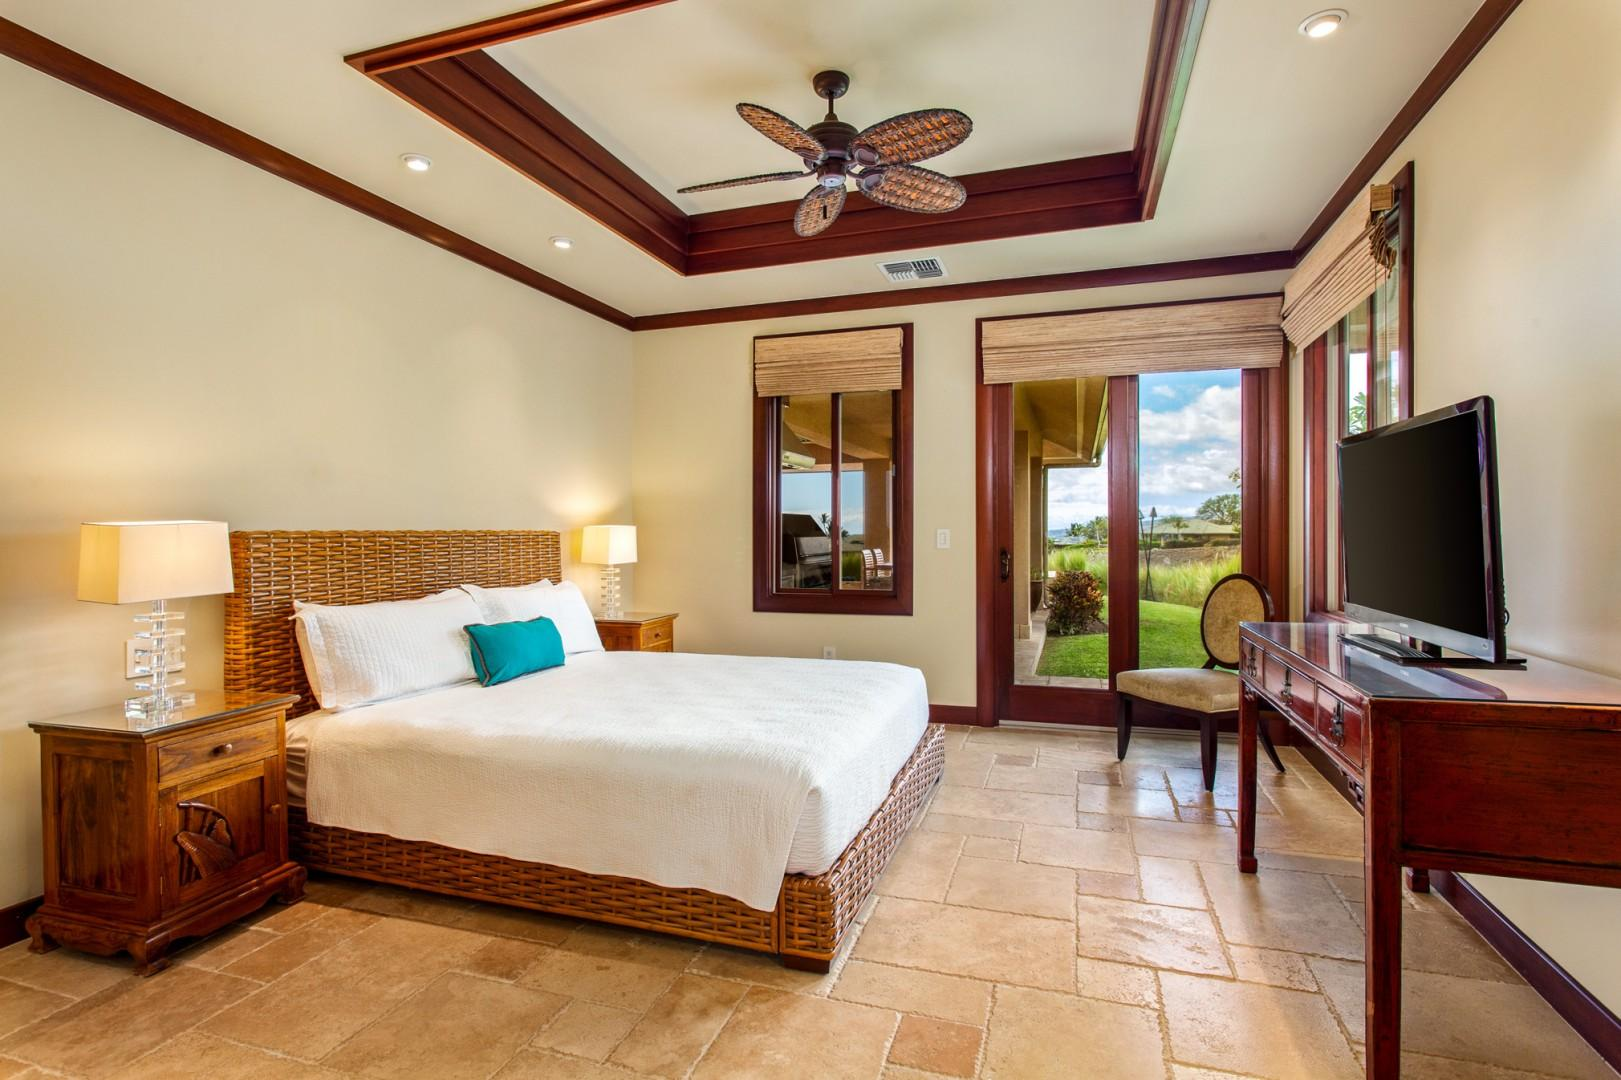 Master bedroom suite #2 offers a king bed, lanai access, and en-suite bath.